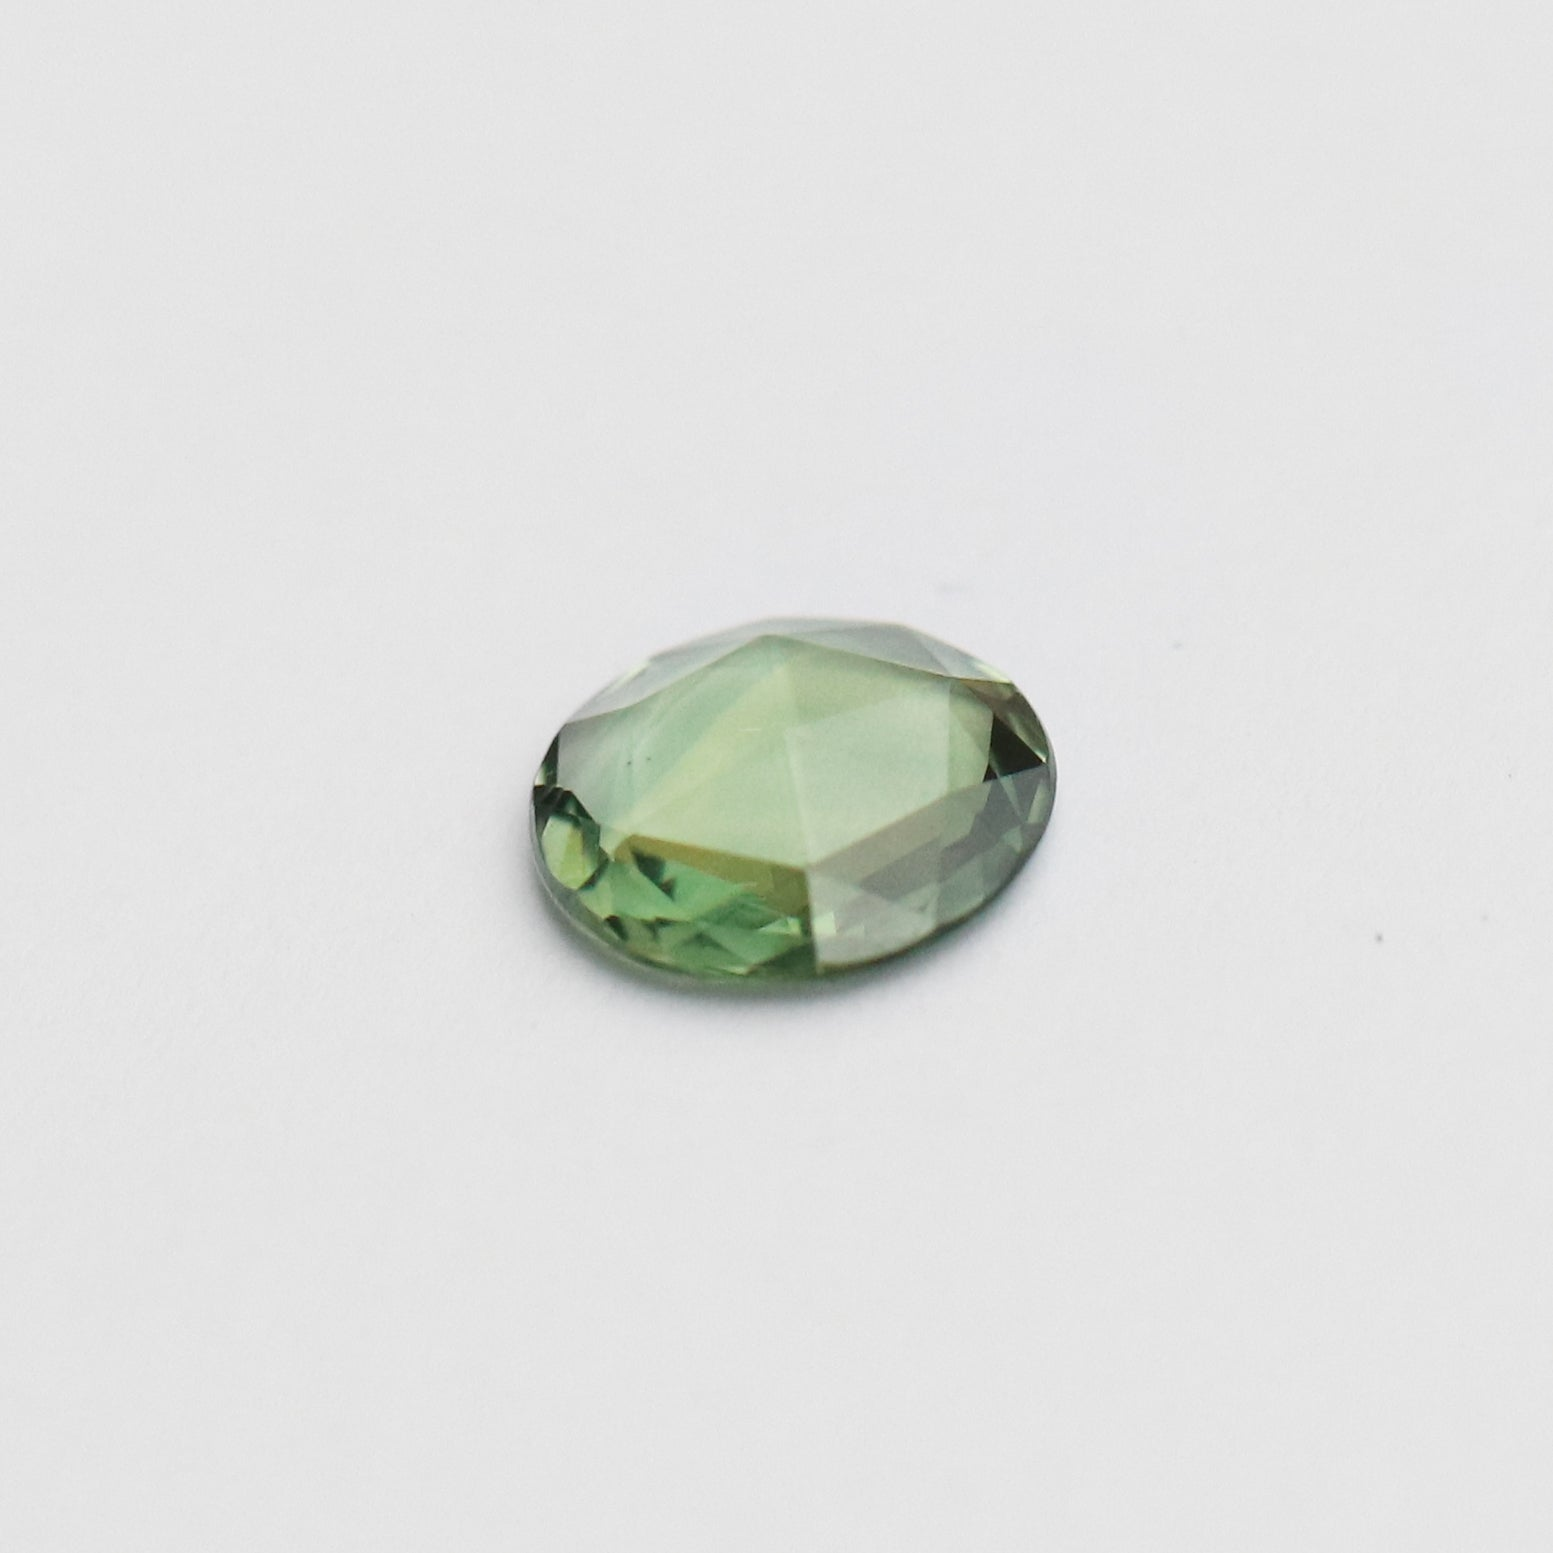 1.19 carat round rose cut green teal Sapphire - inventory code: GRSA119 - Midwinter Co. Alternative Bridal Rings and Modern Fine Jewelry